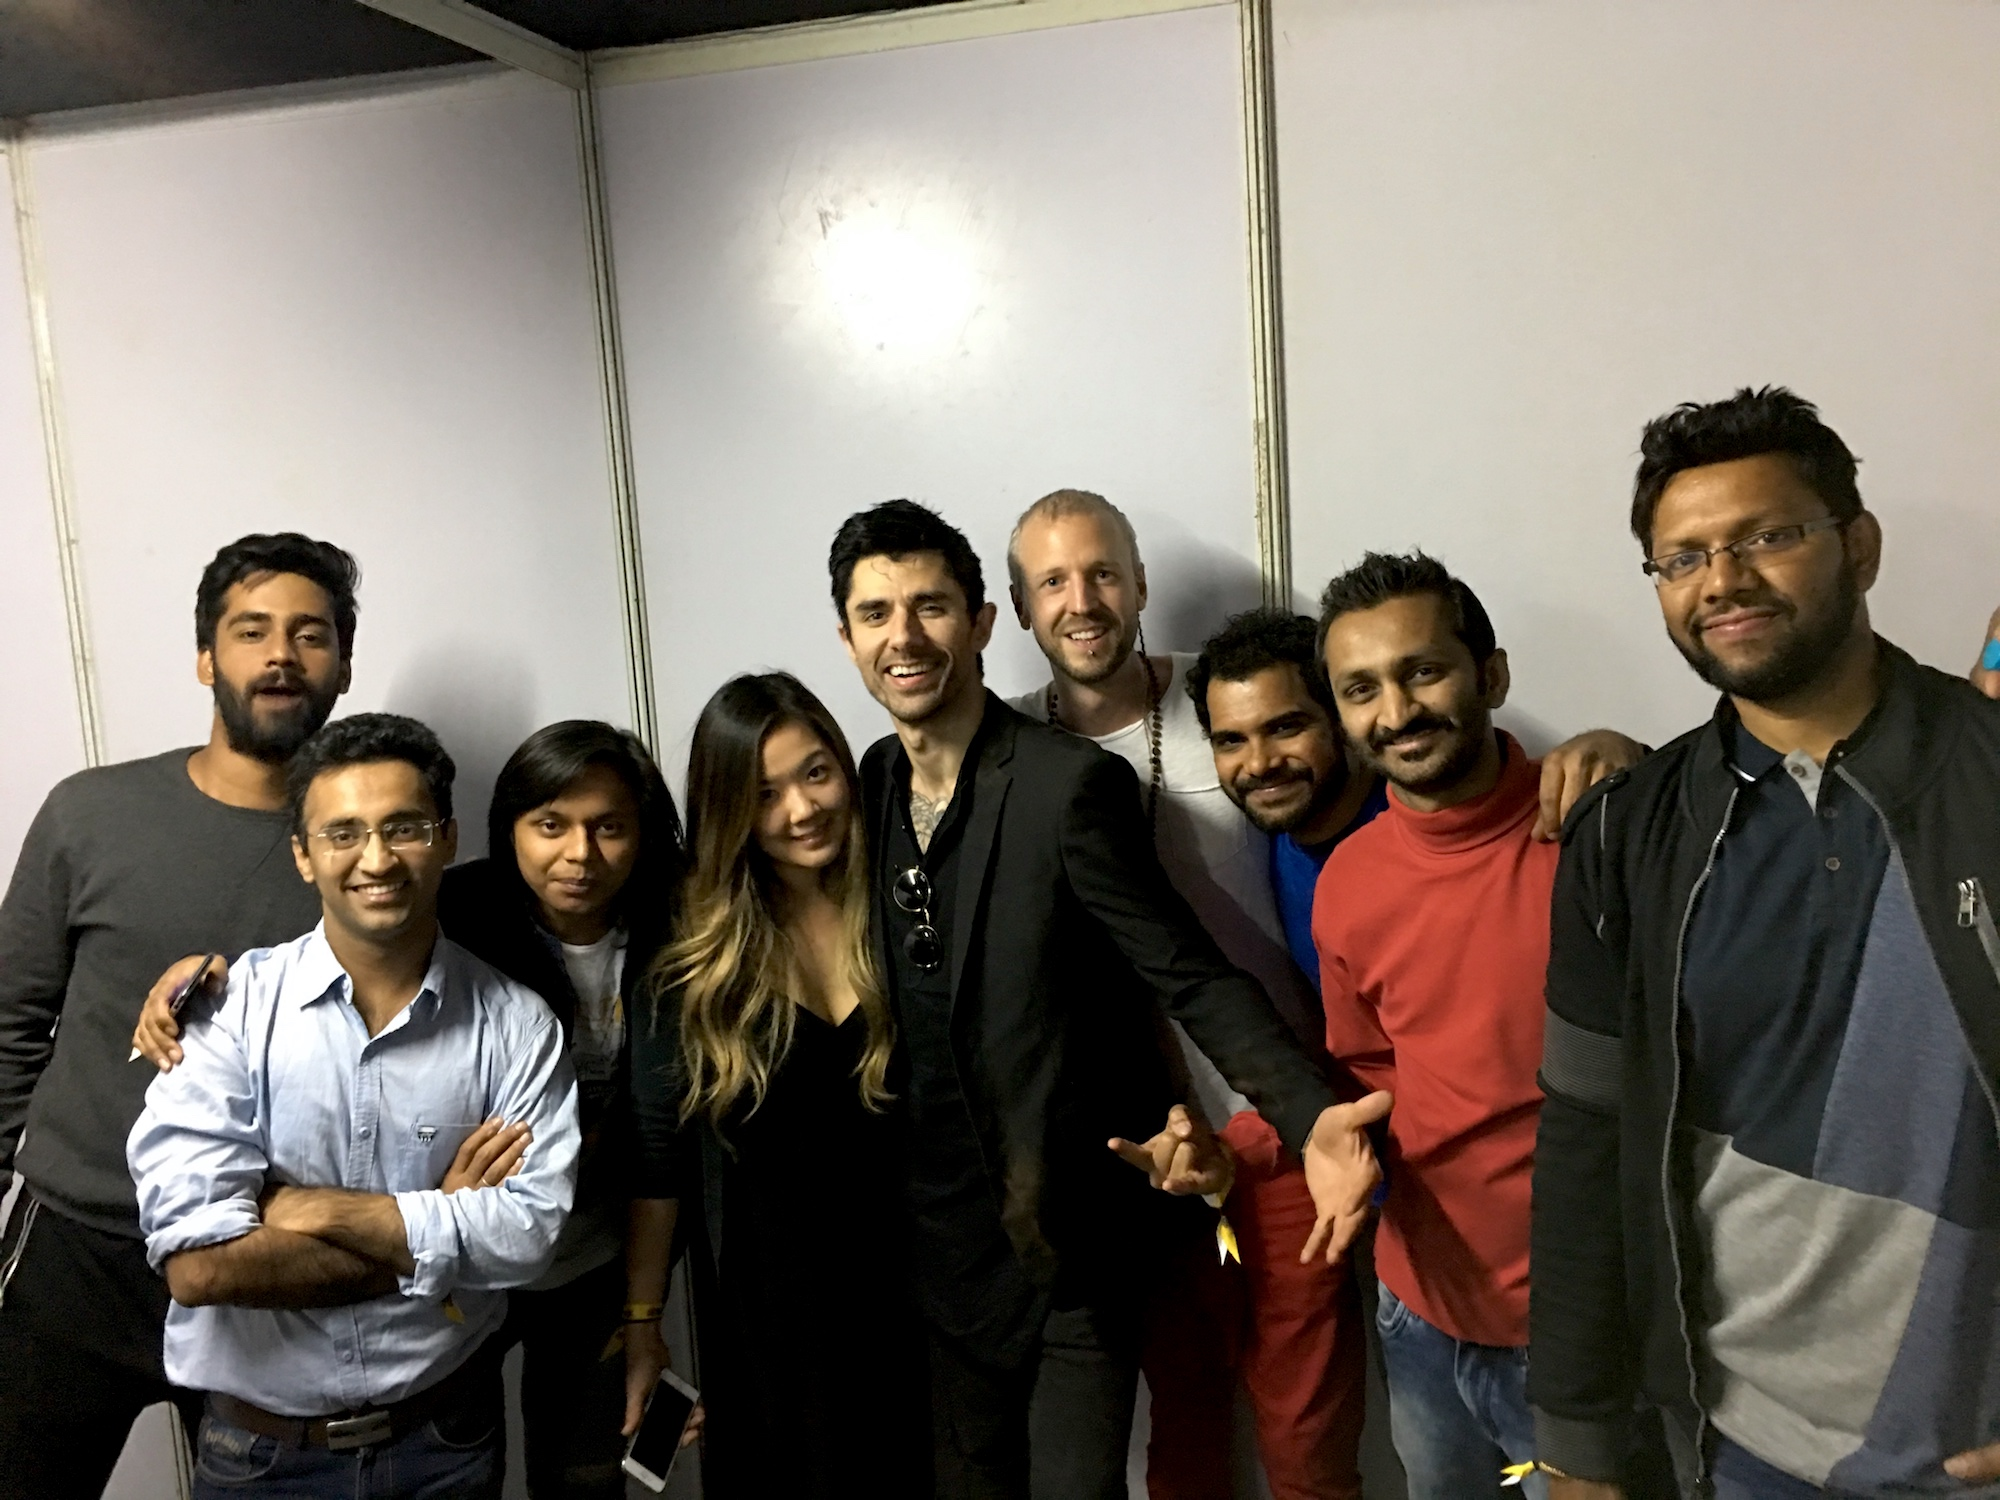 OnenO with KSHMR and Live Orchestra @ Sunburn Music Festival - Pune, India - 2017 OnenO is the Music Director for KSHMR's Live Orchestra.